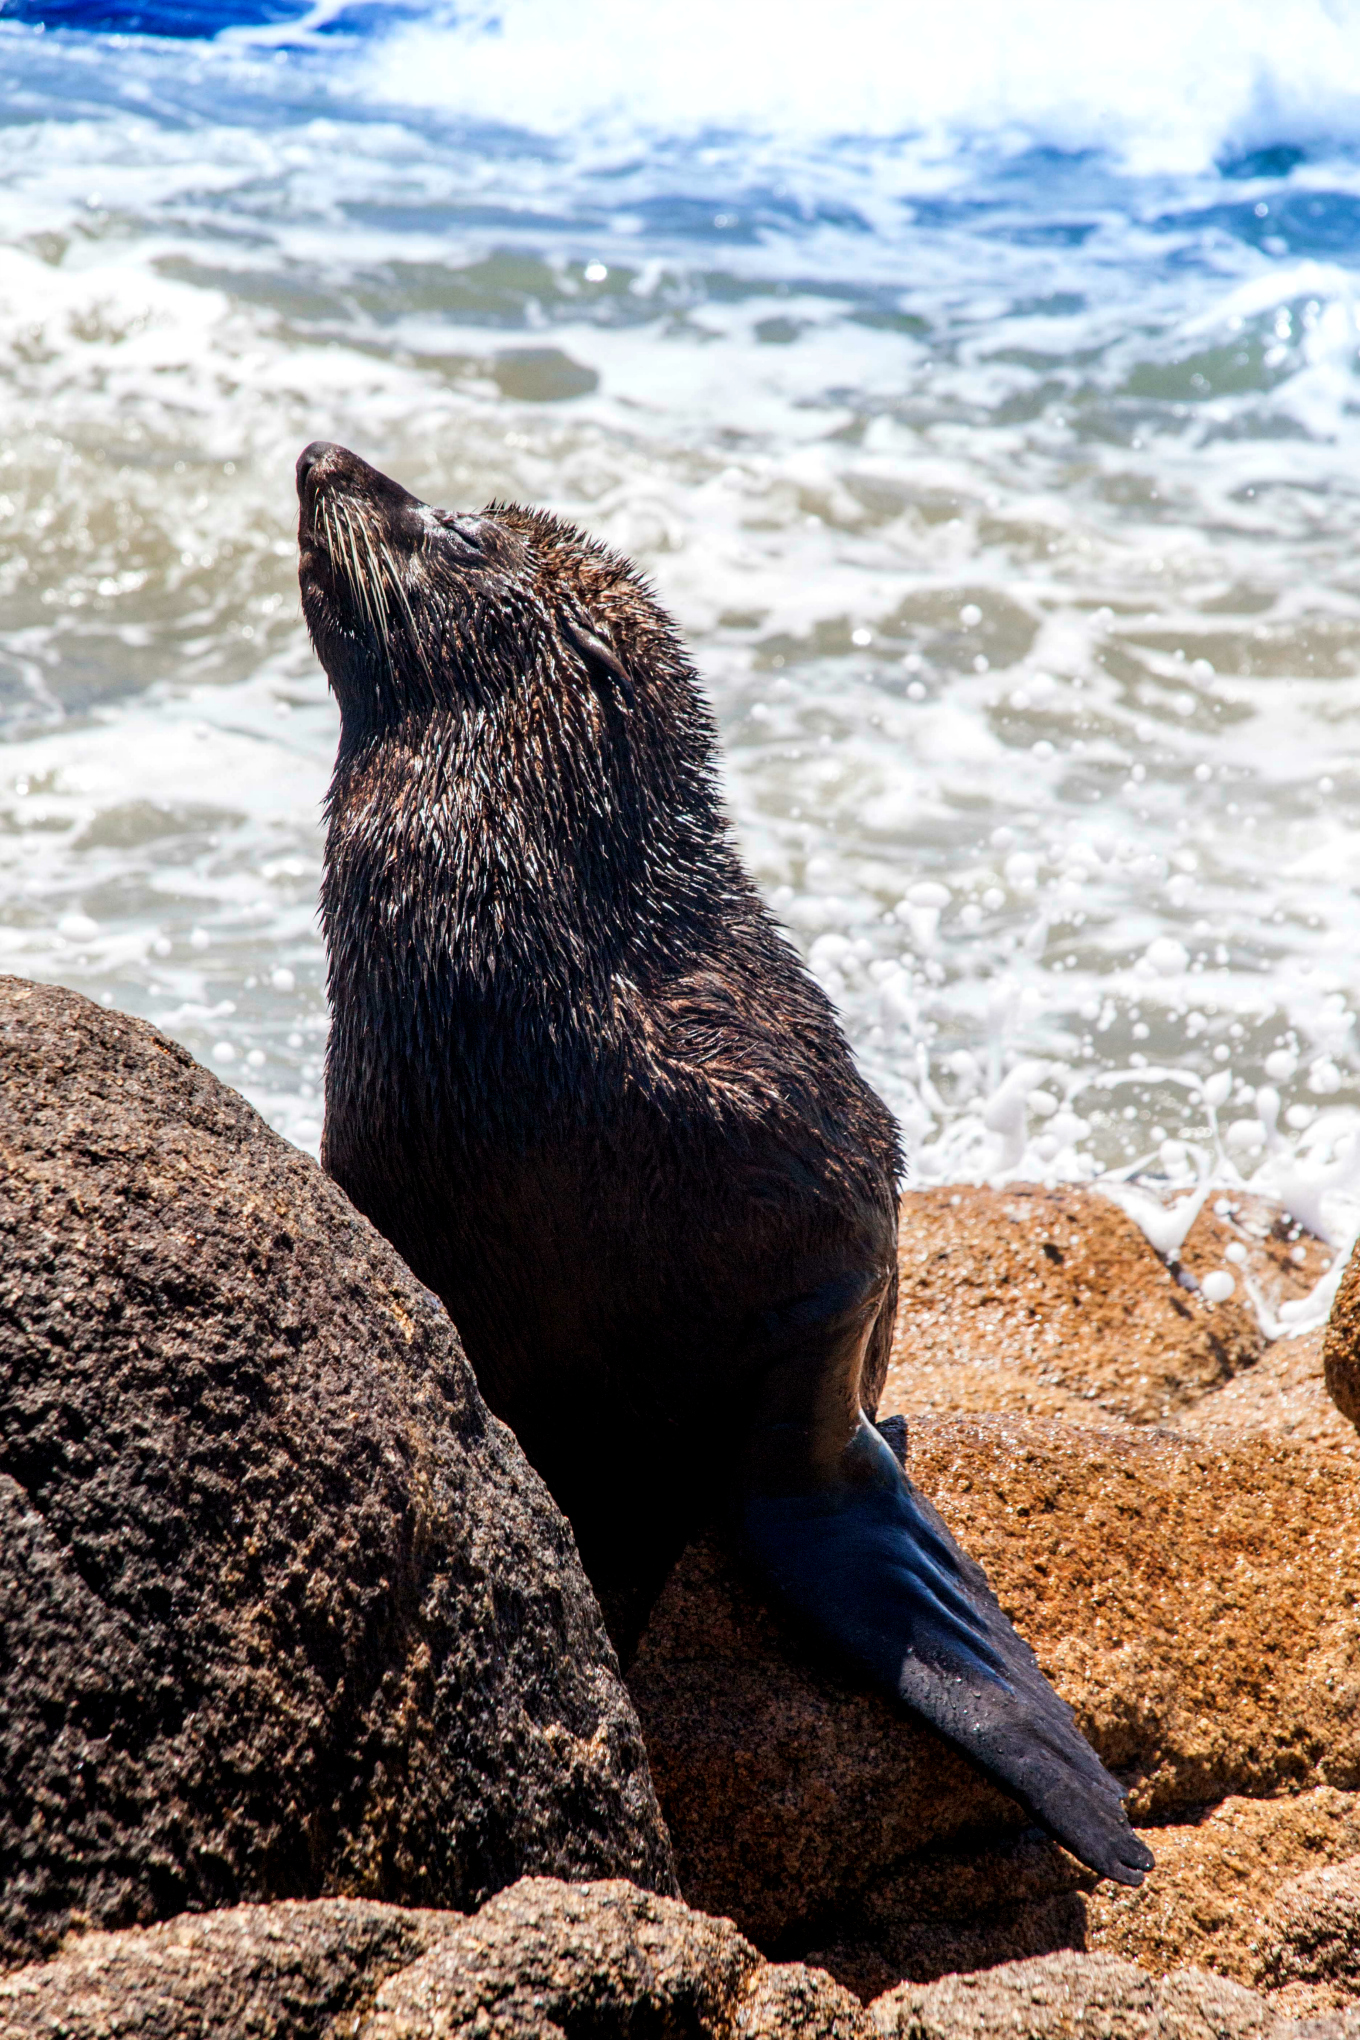 This is an usual image in Cabo Polonio. Photo by Francois